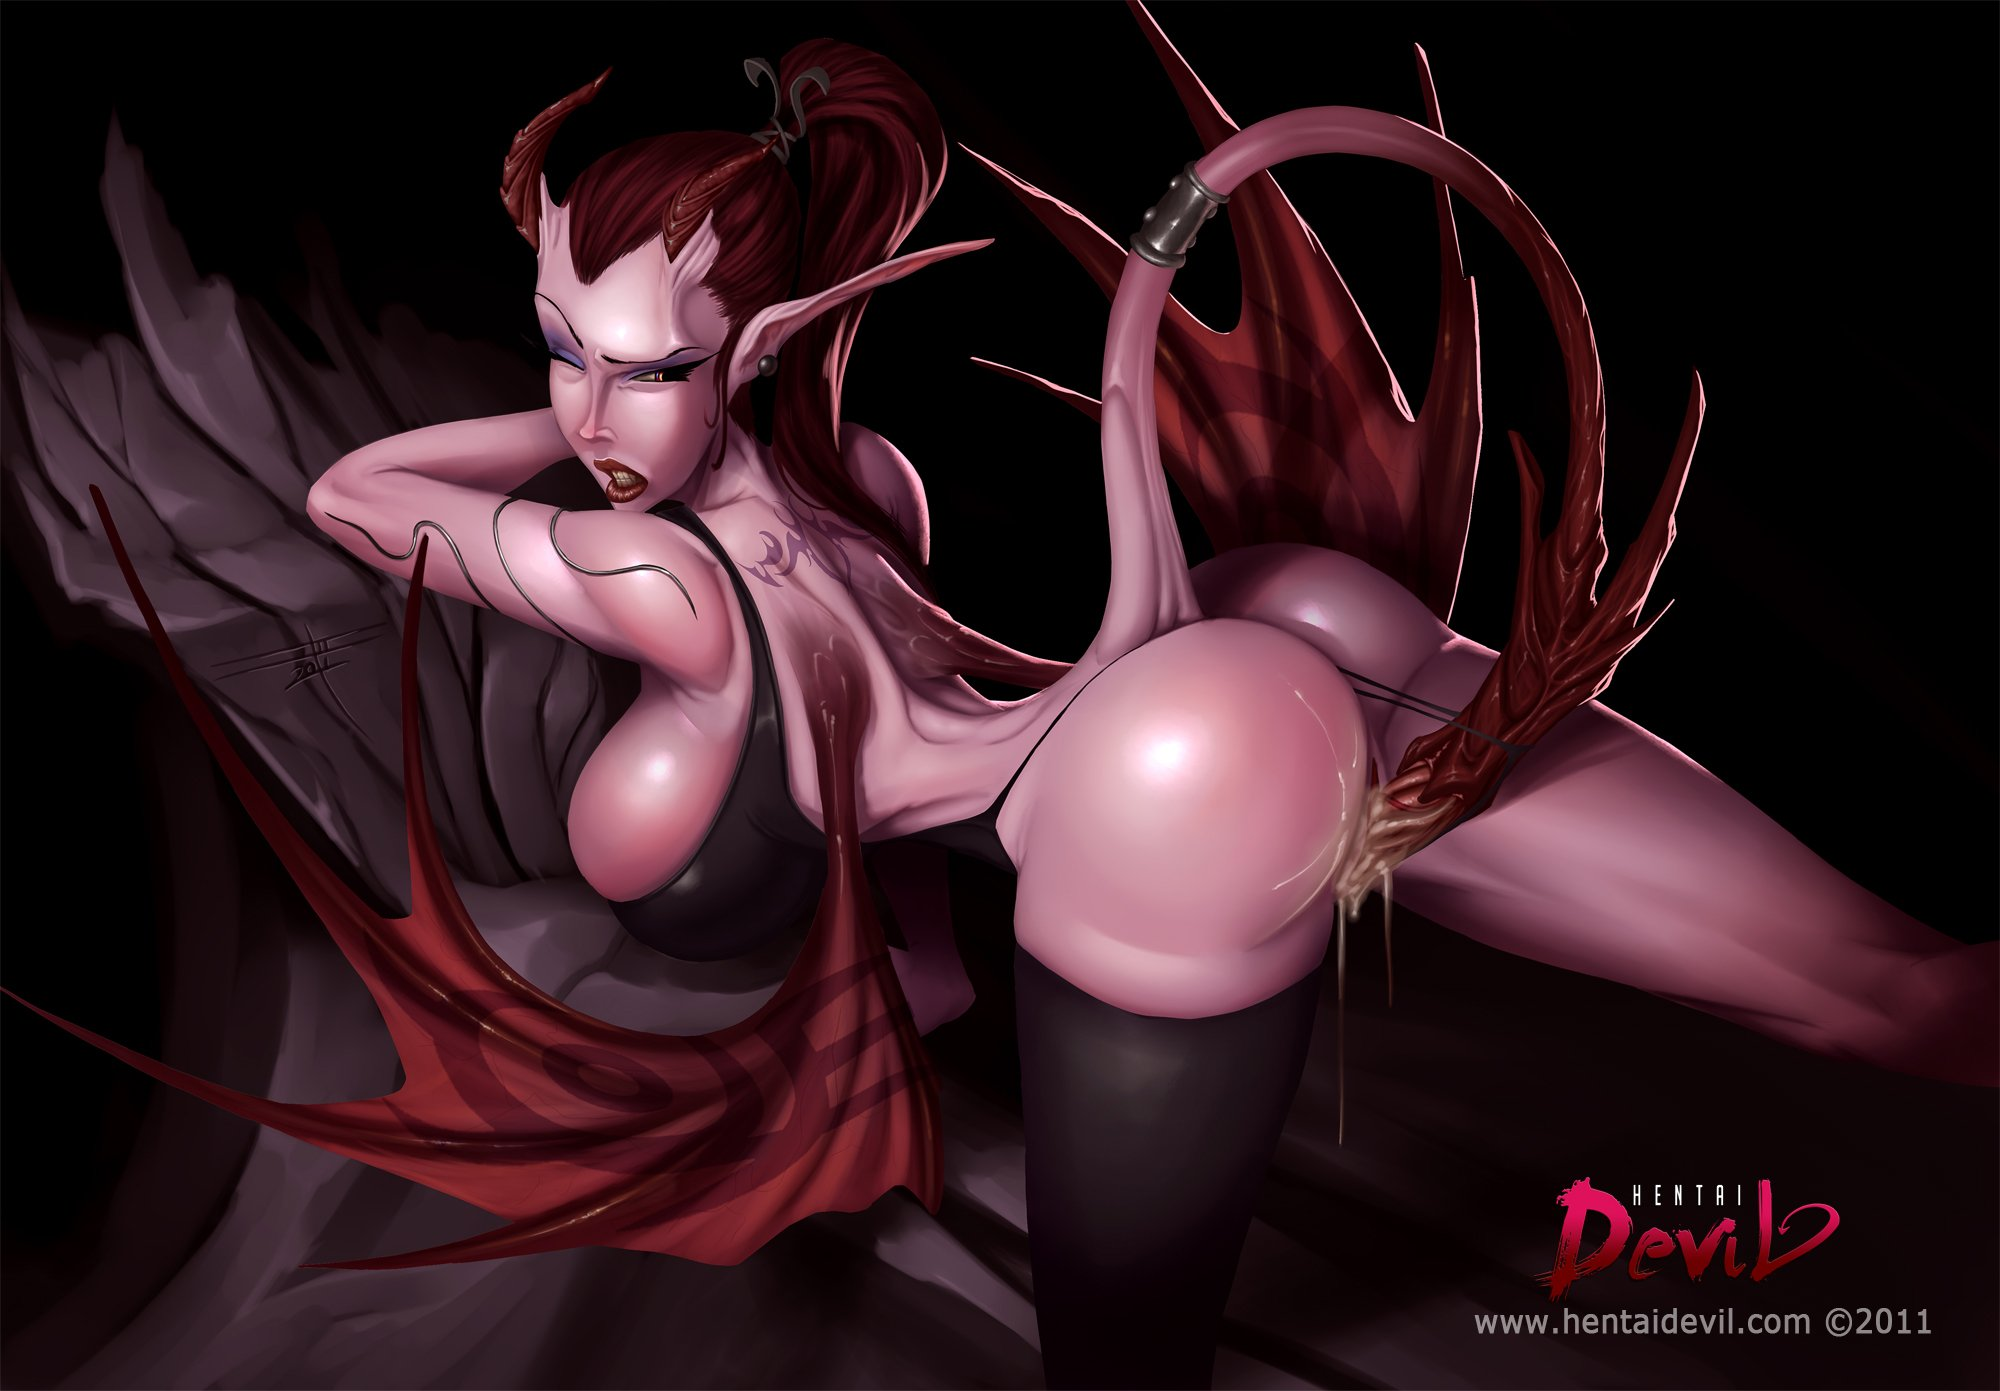 Animated nude devil girl sexy images